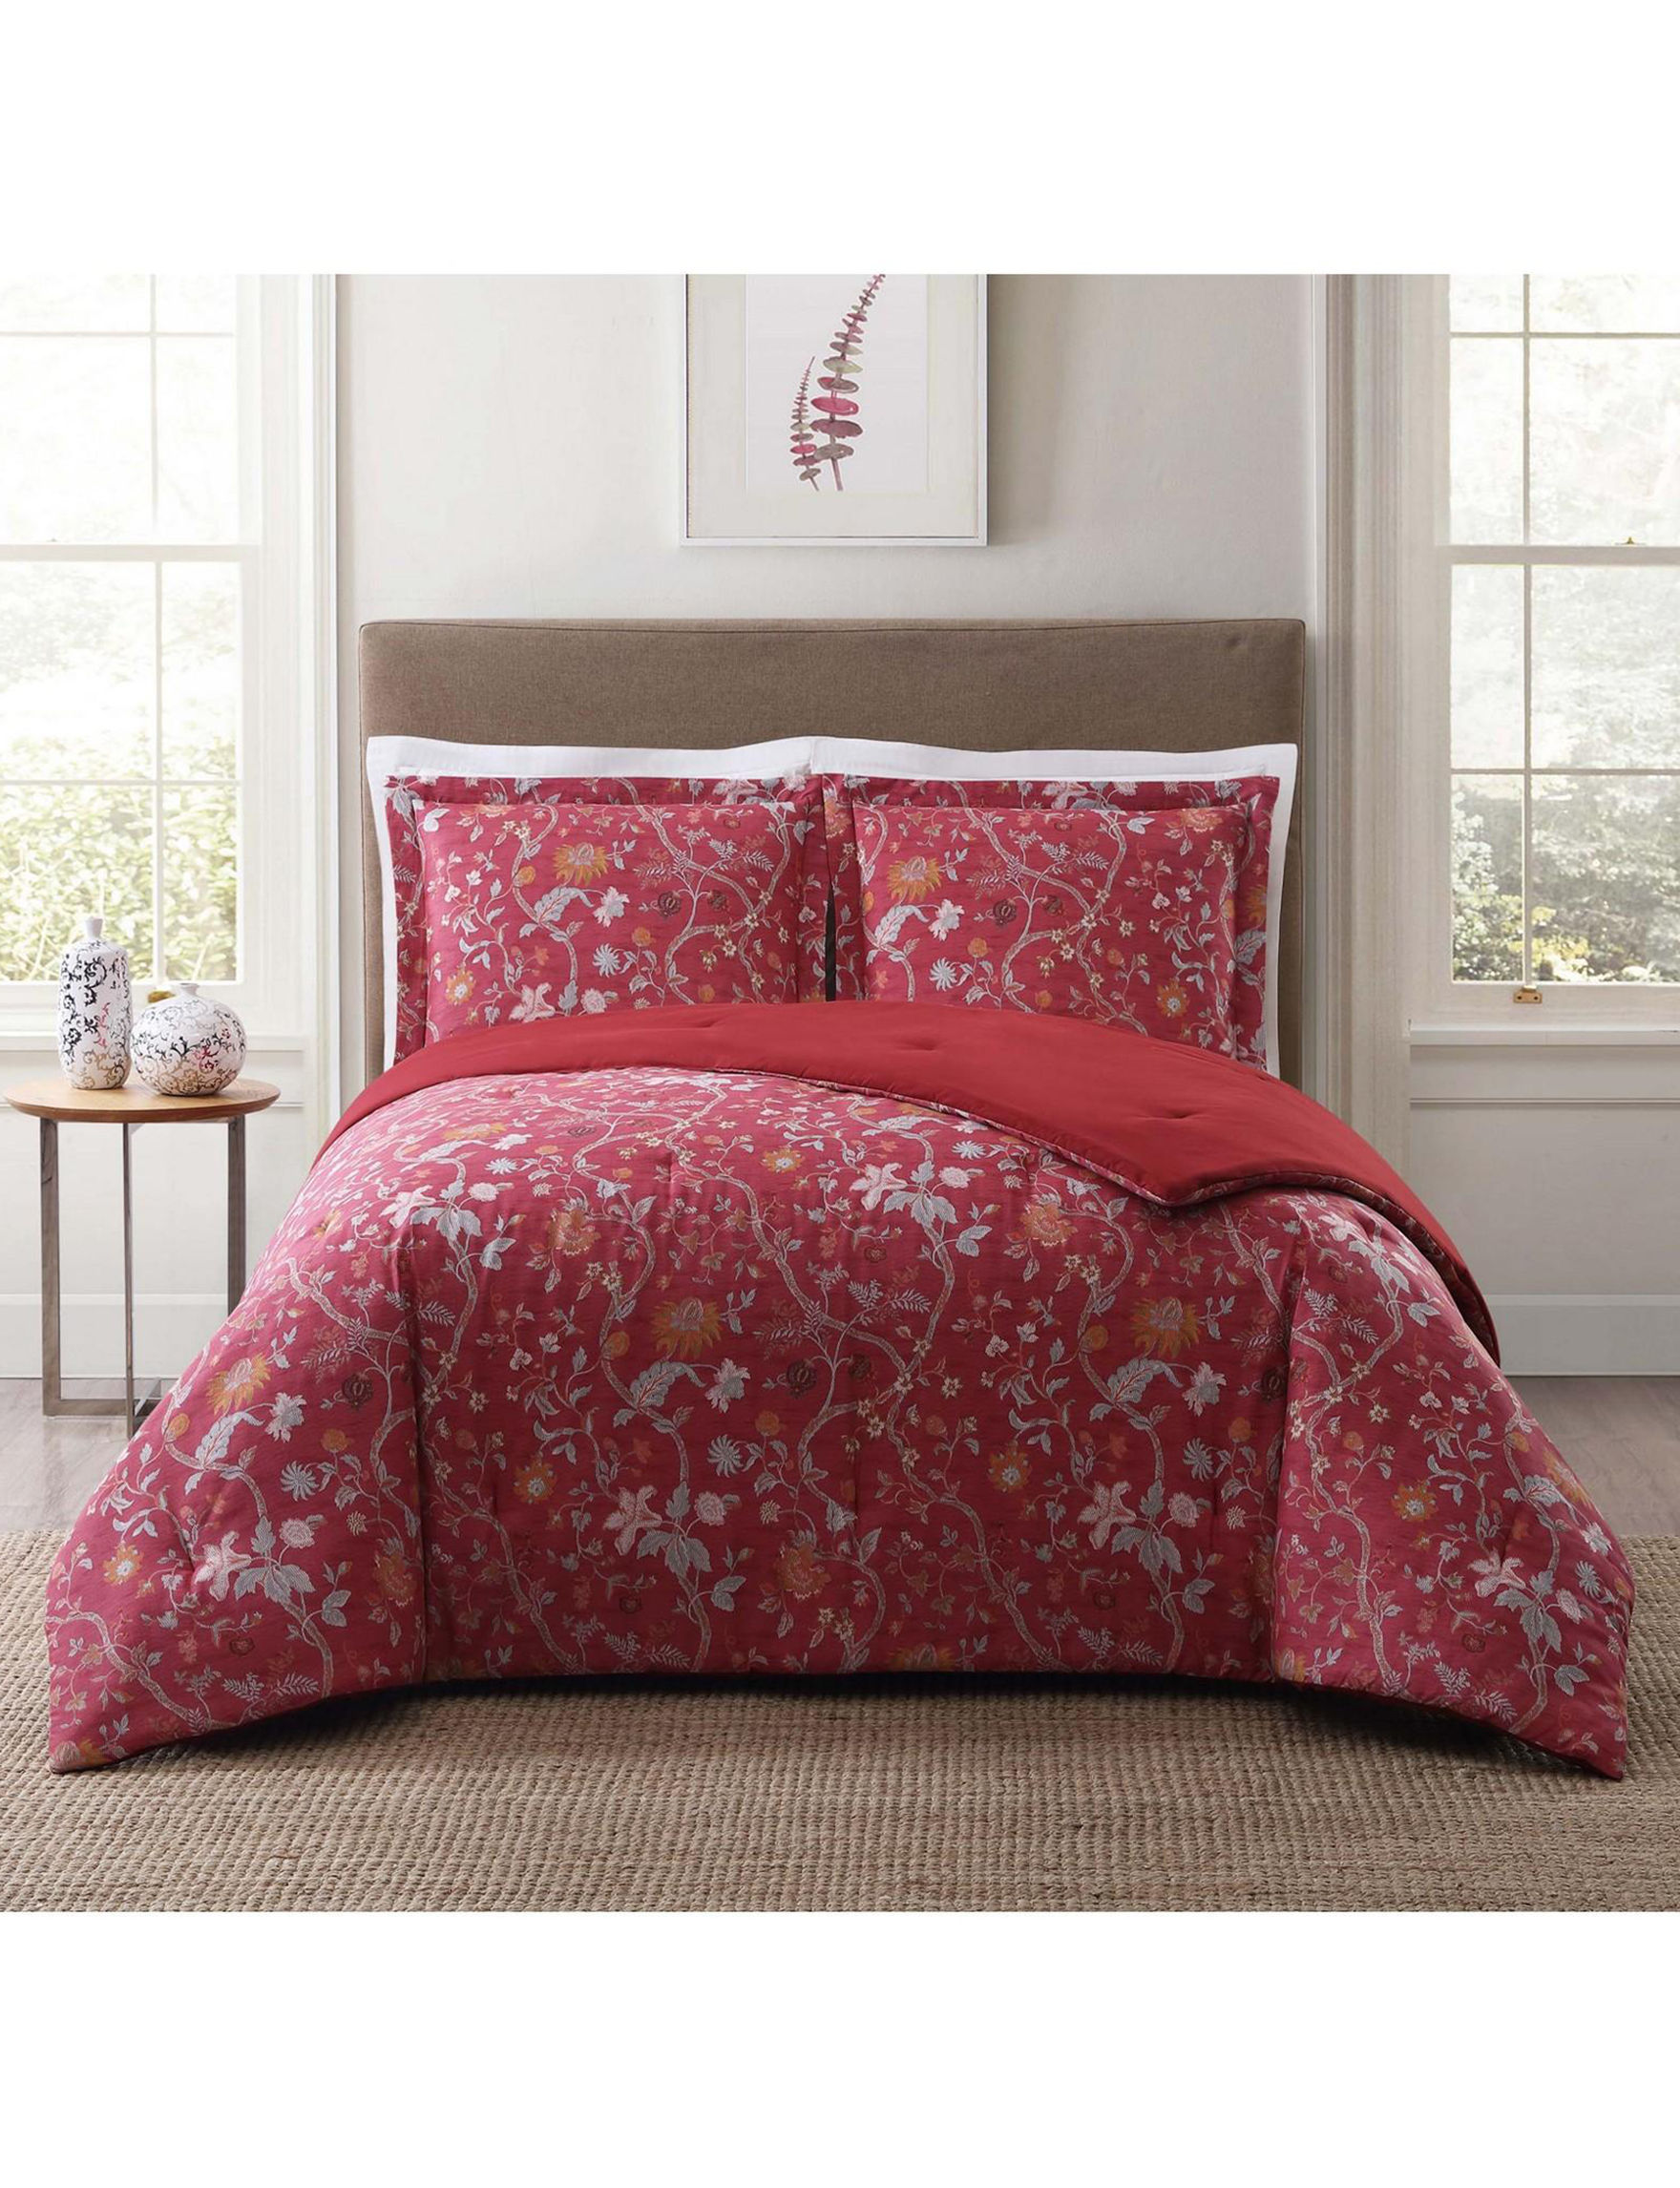 Style 212 Red Multi Comforters & Comforter Sets